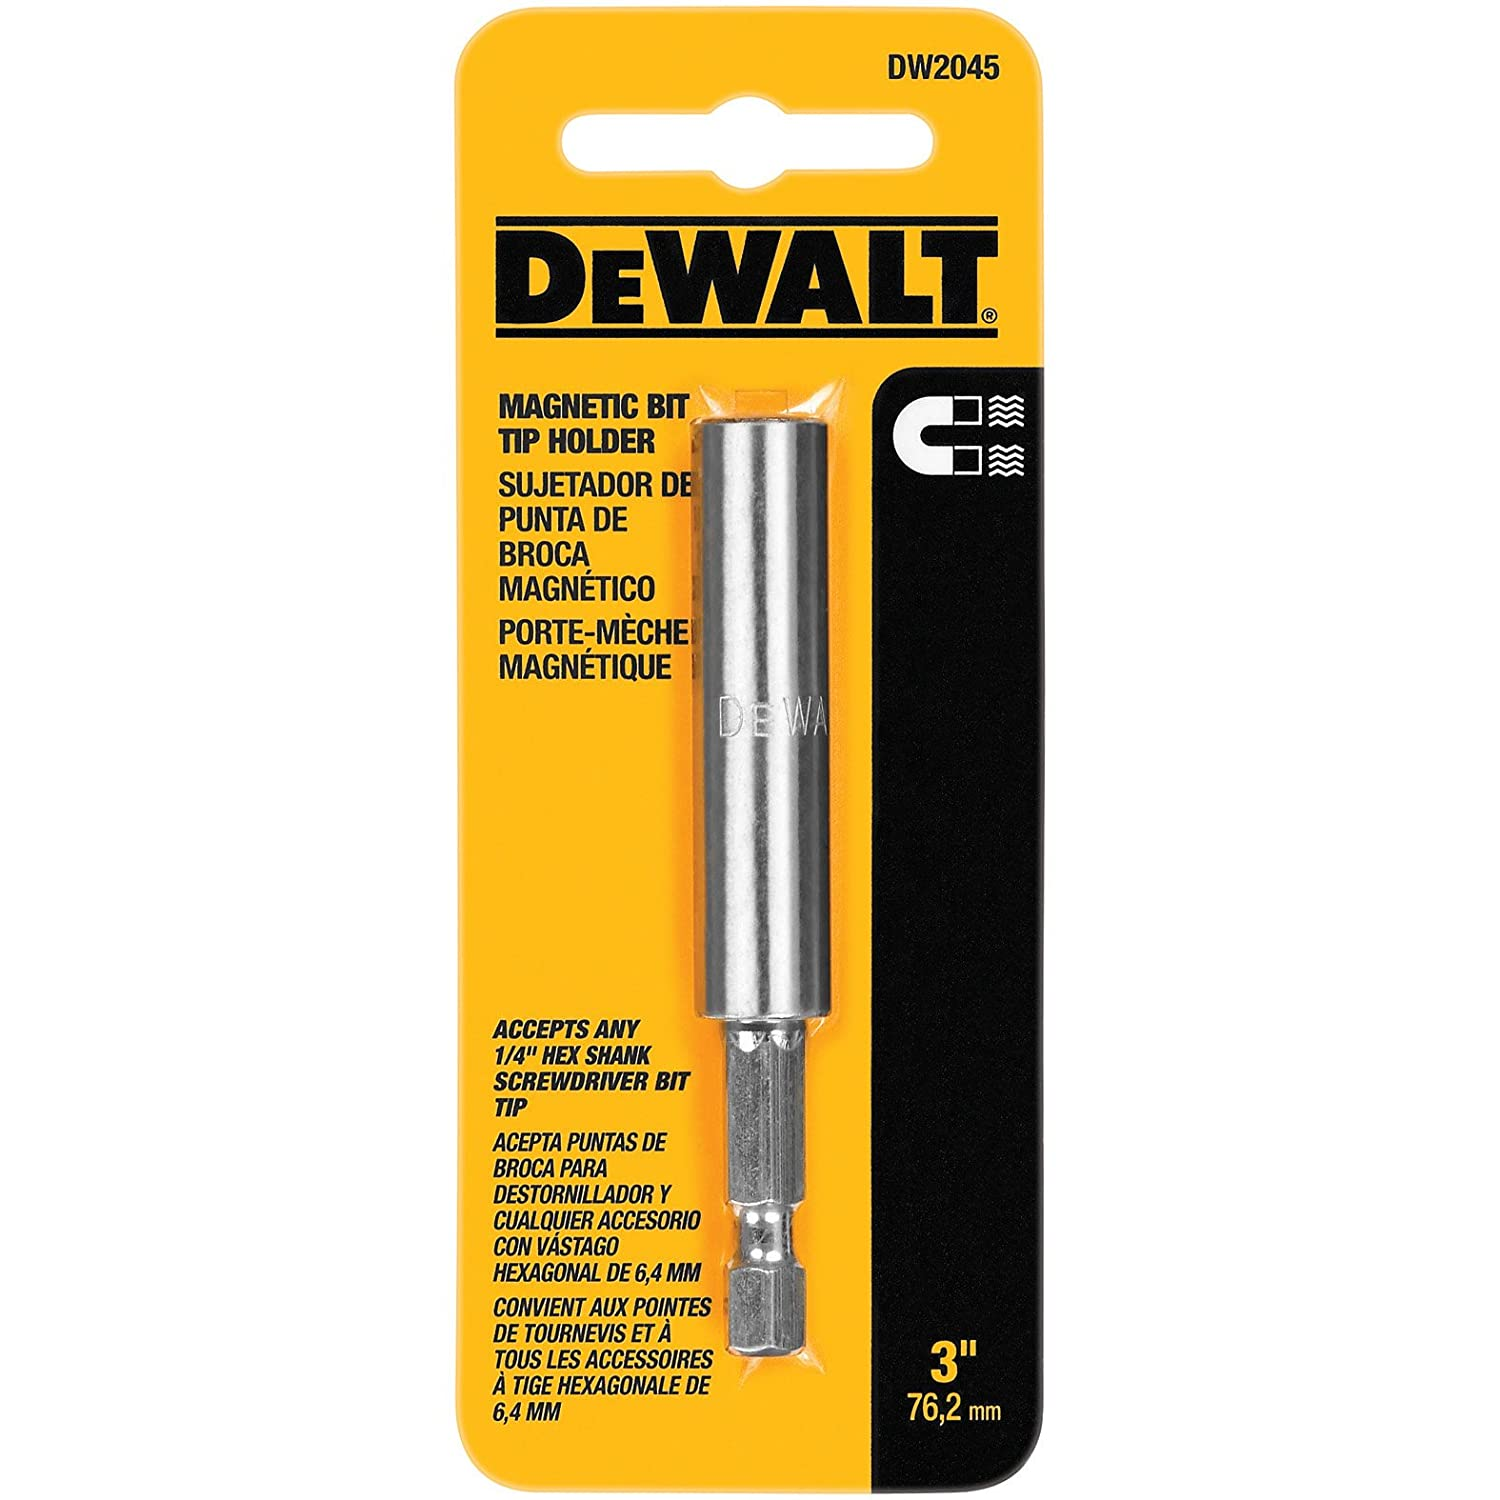 DEWALT DW2045B 3-Inch Magnetic Bit Tip Holder, 50-Pack - Power Drill Accessories - Amazon.com